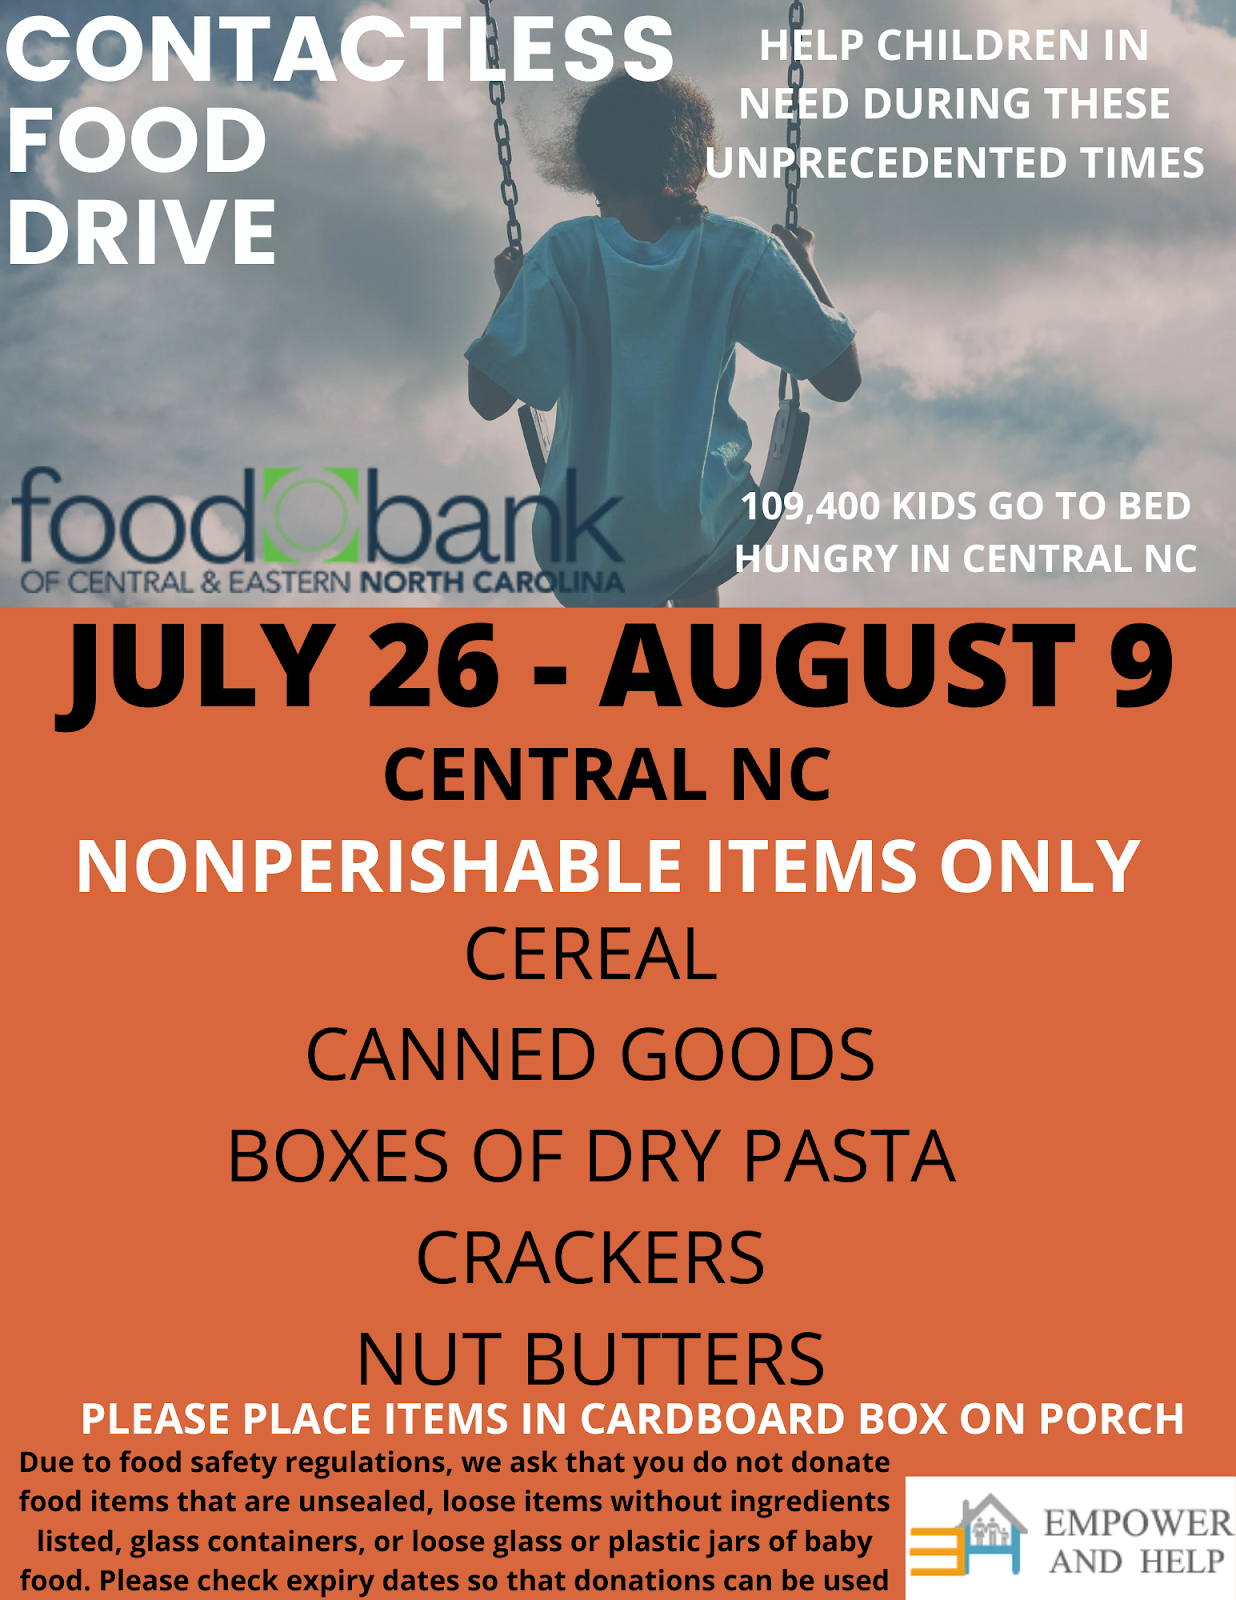 Steps I Took to Conduct Drive for The Food Bank of Central & Eastern NC